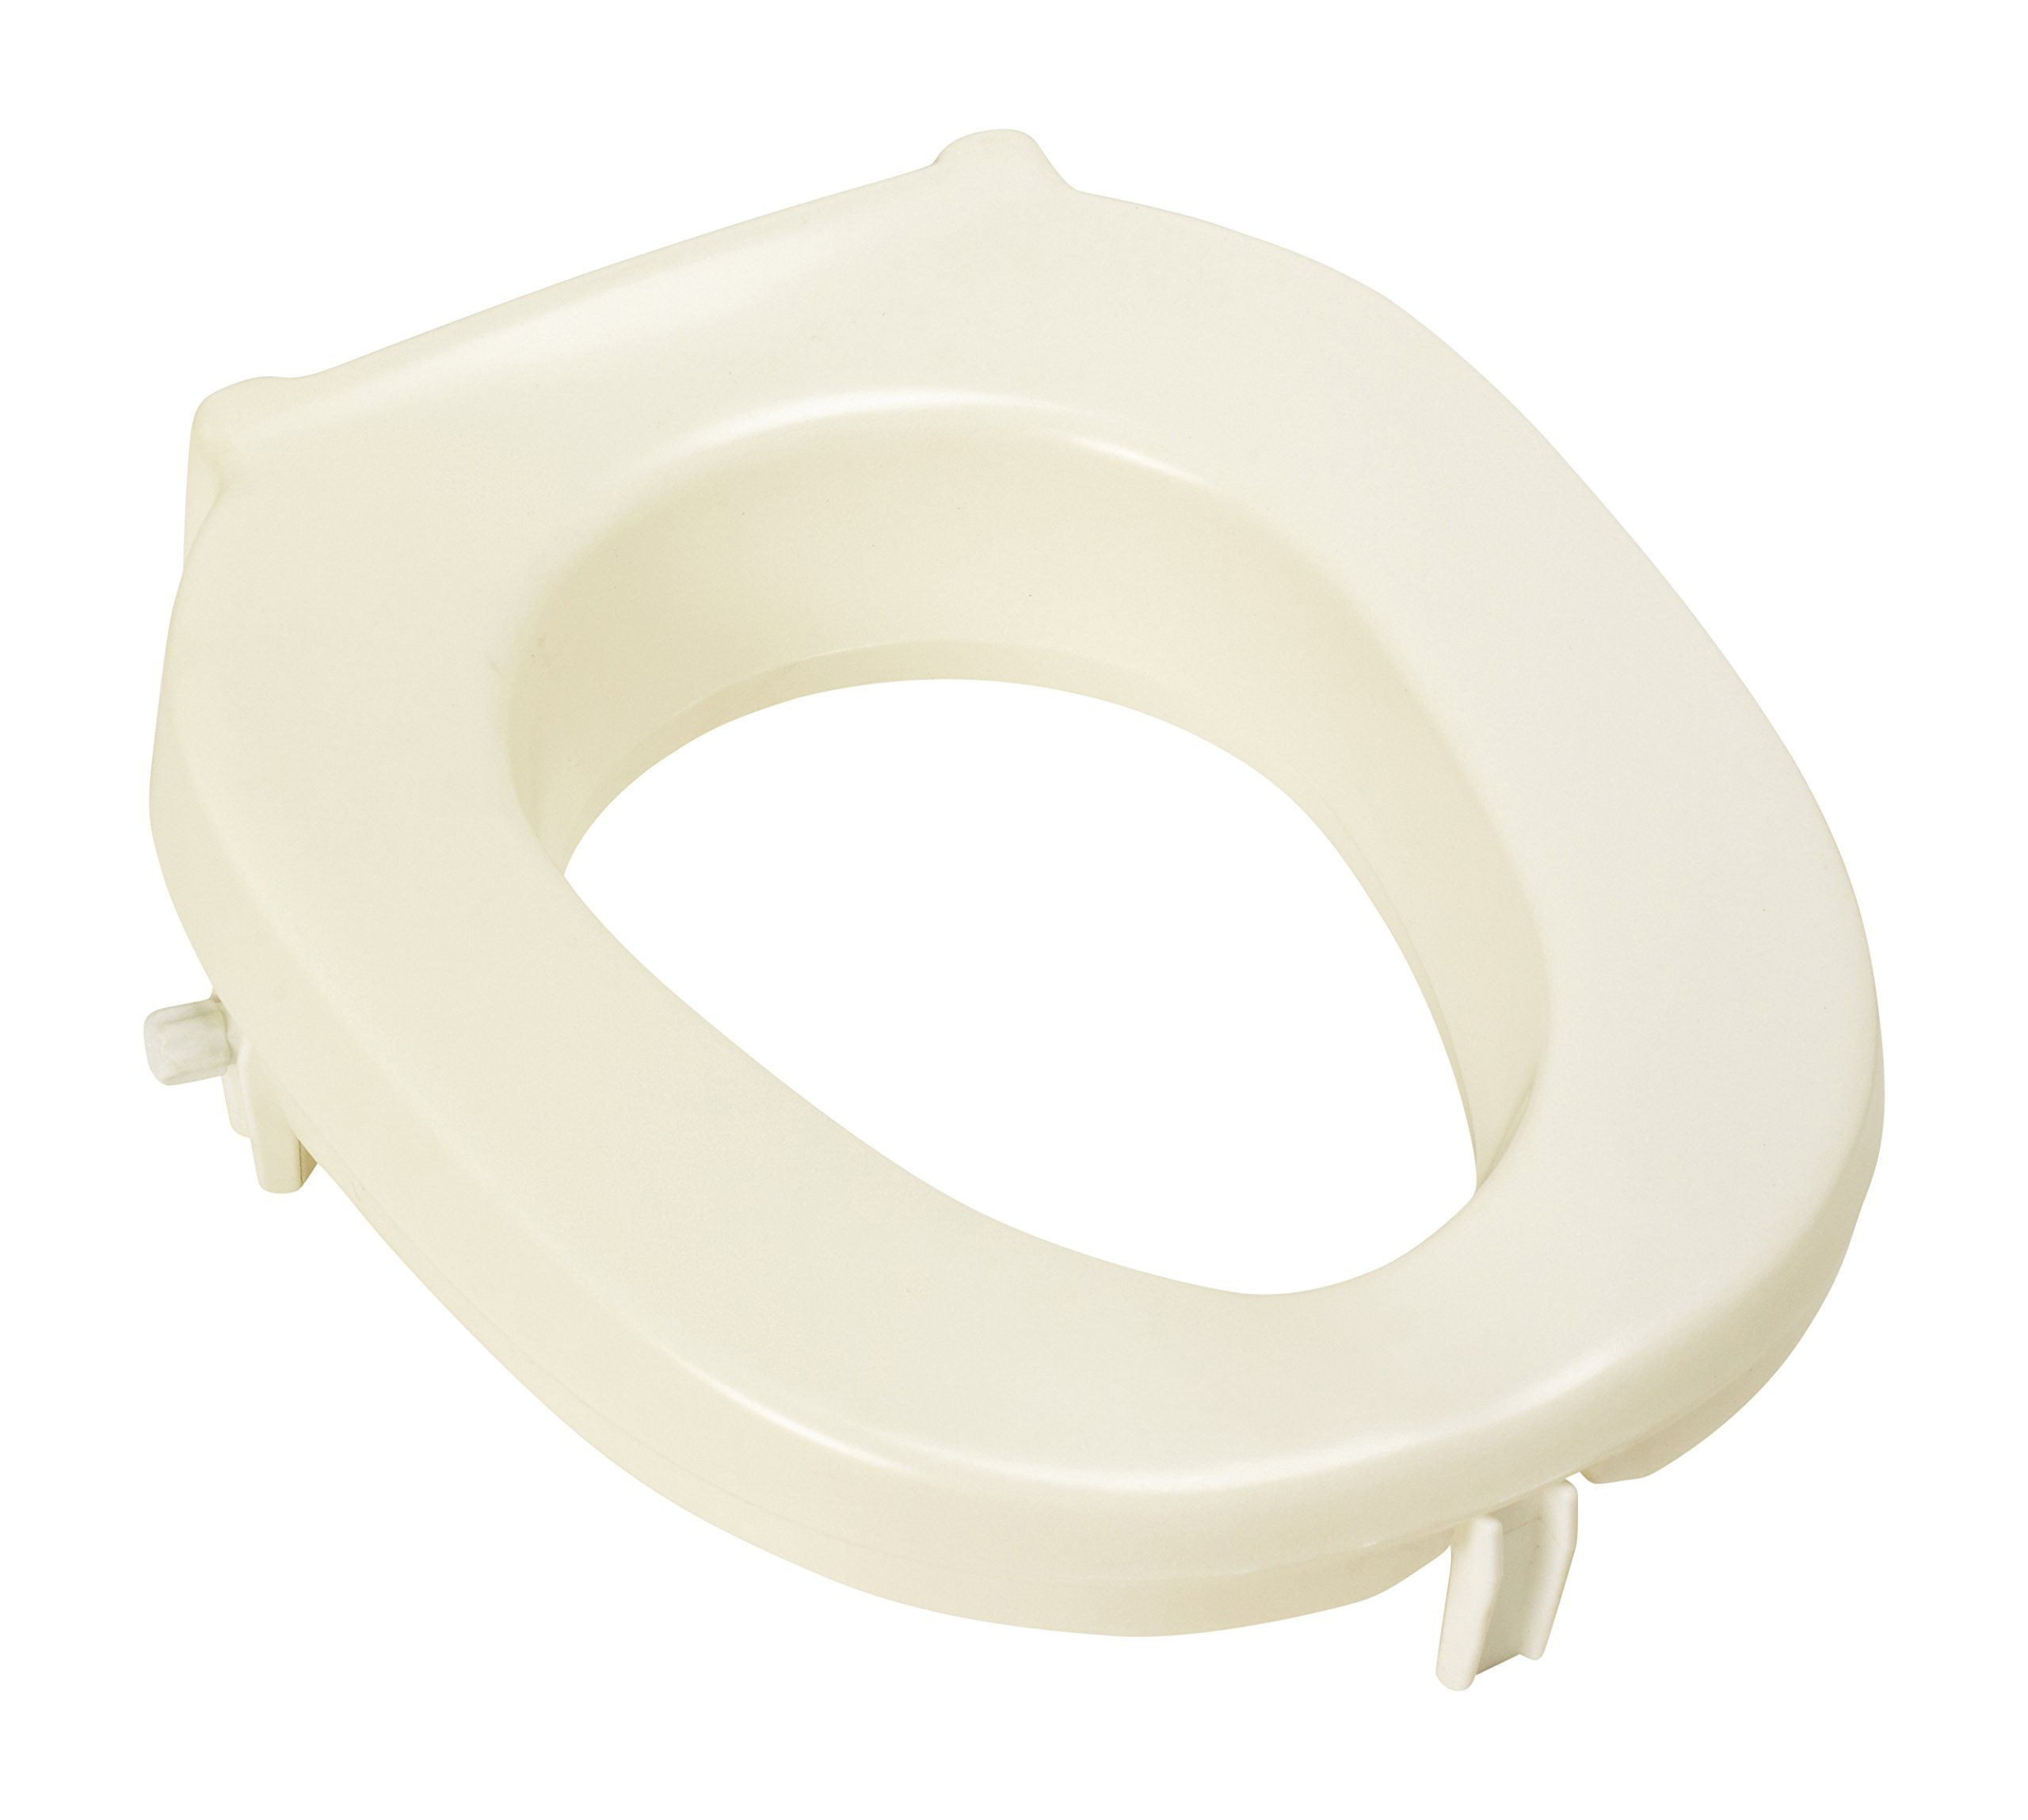 Homecraft Taunton Raised Toilet Seat, 5 cm (2 in.) to 15 cm (6 in.), Limited Mobility, Forward Sloping, Supports 152 kg, Lowering & Raising Toilet Seat Assist (Eligible for VAT Relief in The UK) by Homecraft